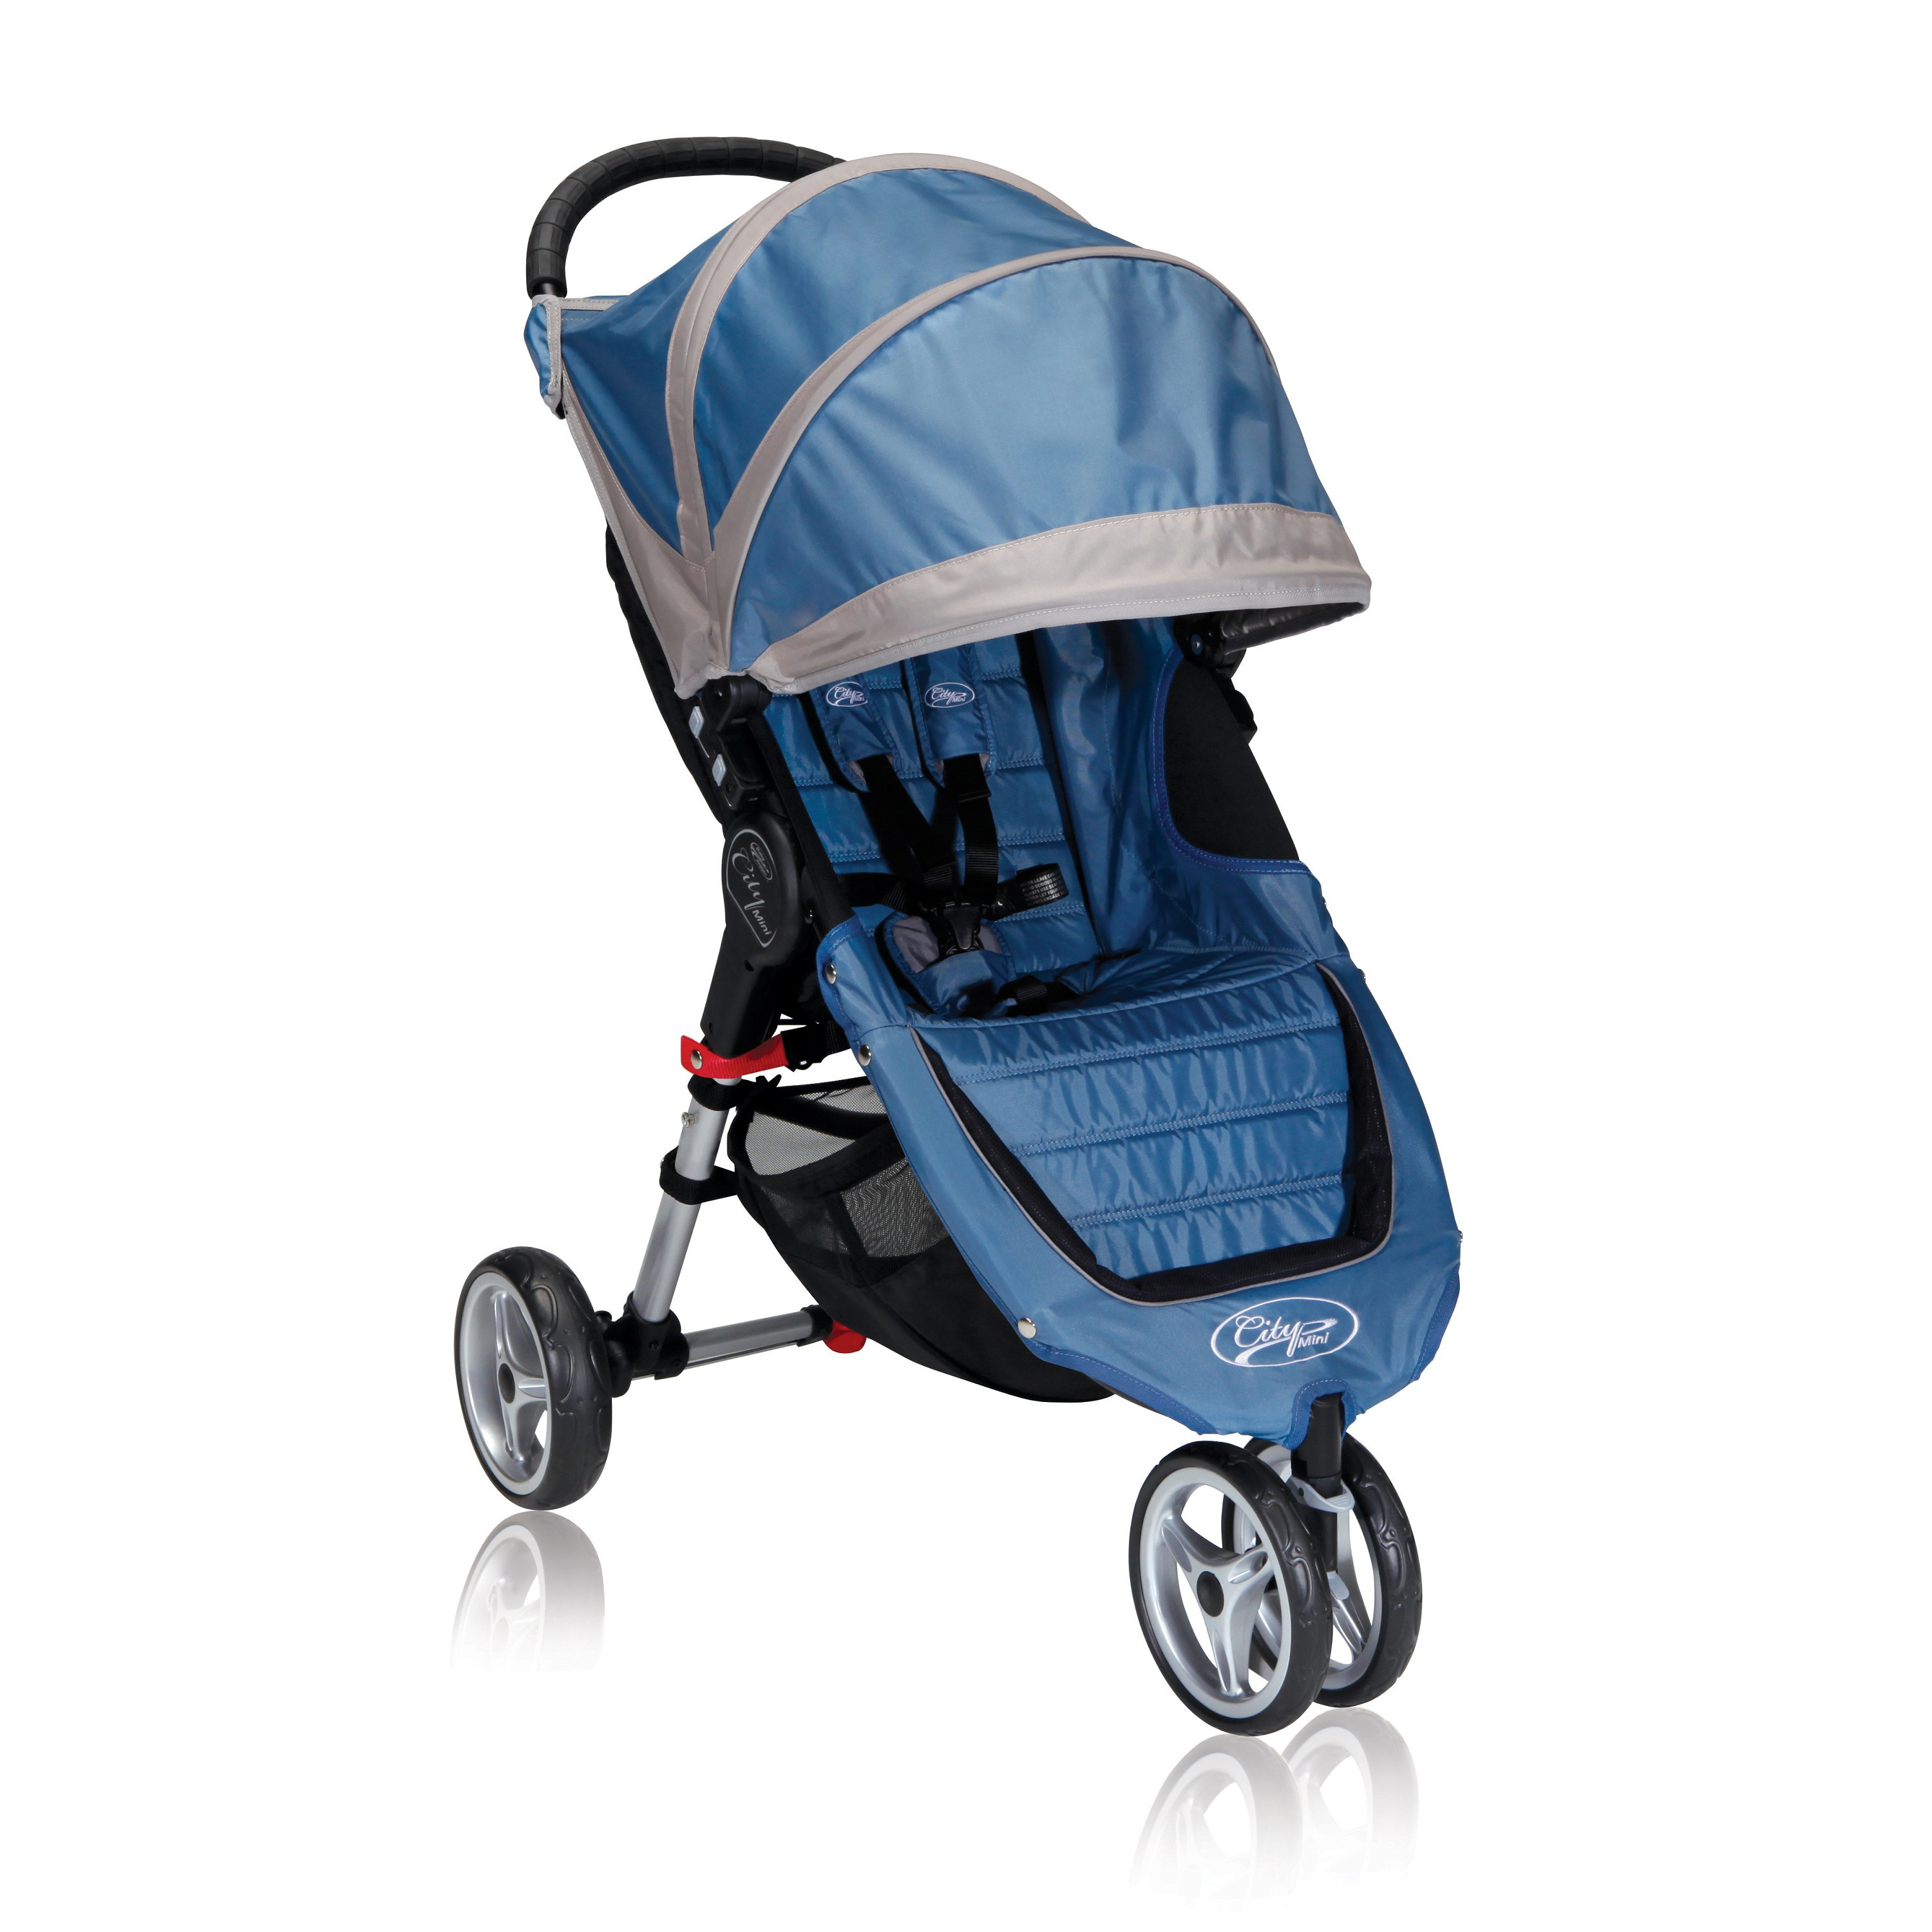 Jogger City Mini Lightweight Easy Fold Stroller Blue/Gray